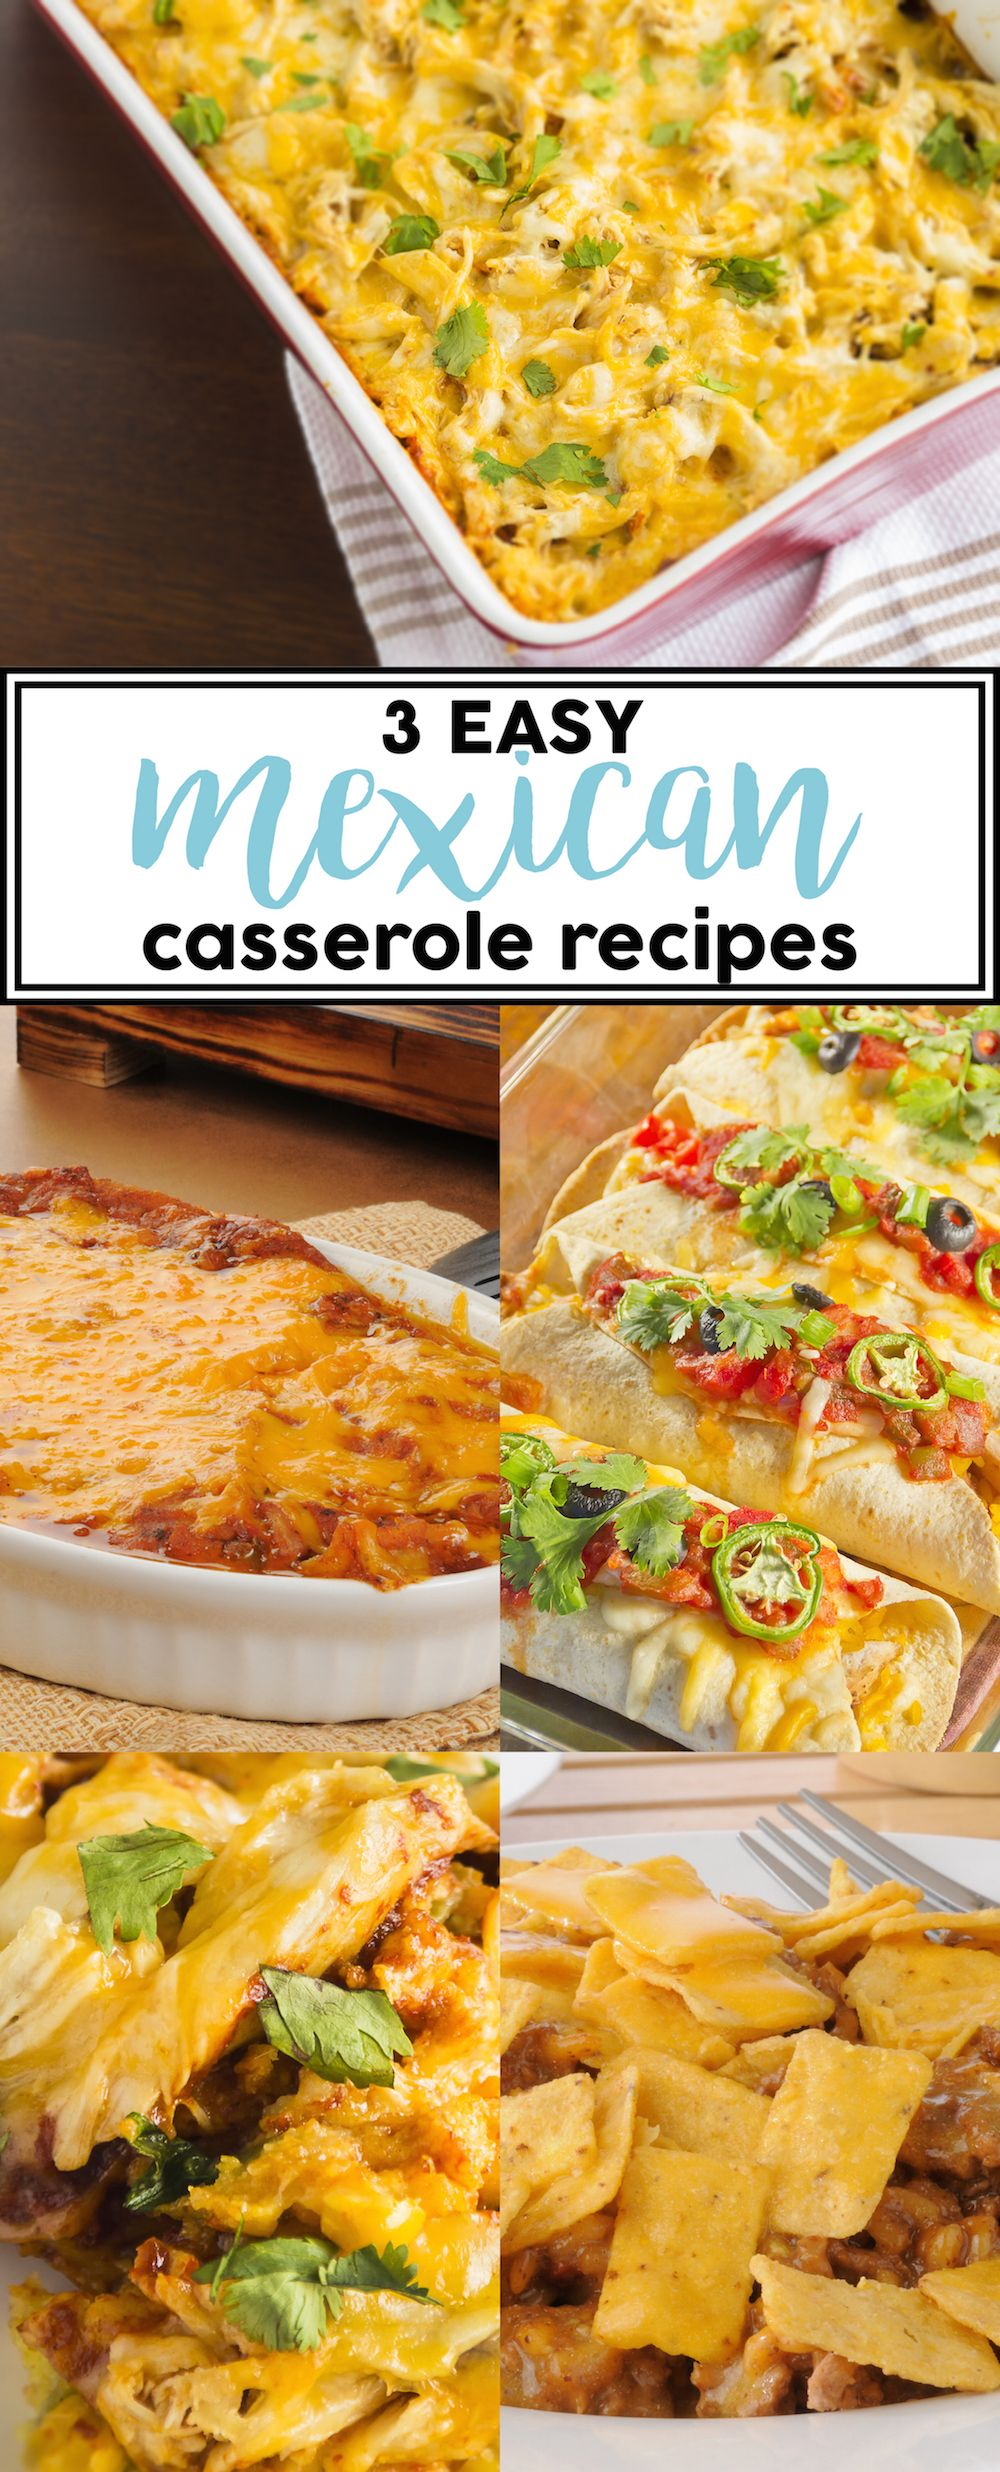 3 easy mexican casserole recipes easy mexican casserole casserole 3 easy mexican casserole recipes mexican food recipesmexican dishesdinner forumfinder Choice Image